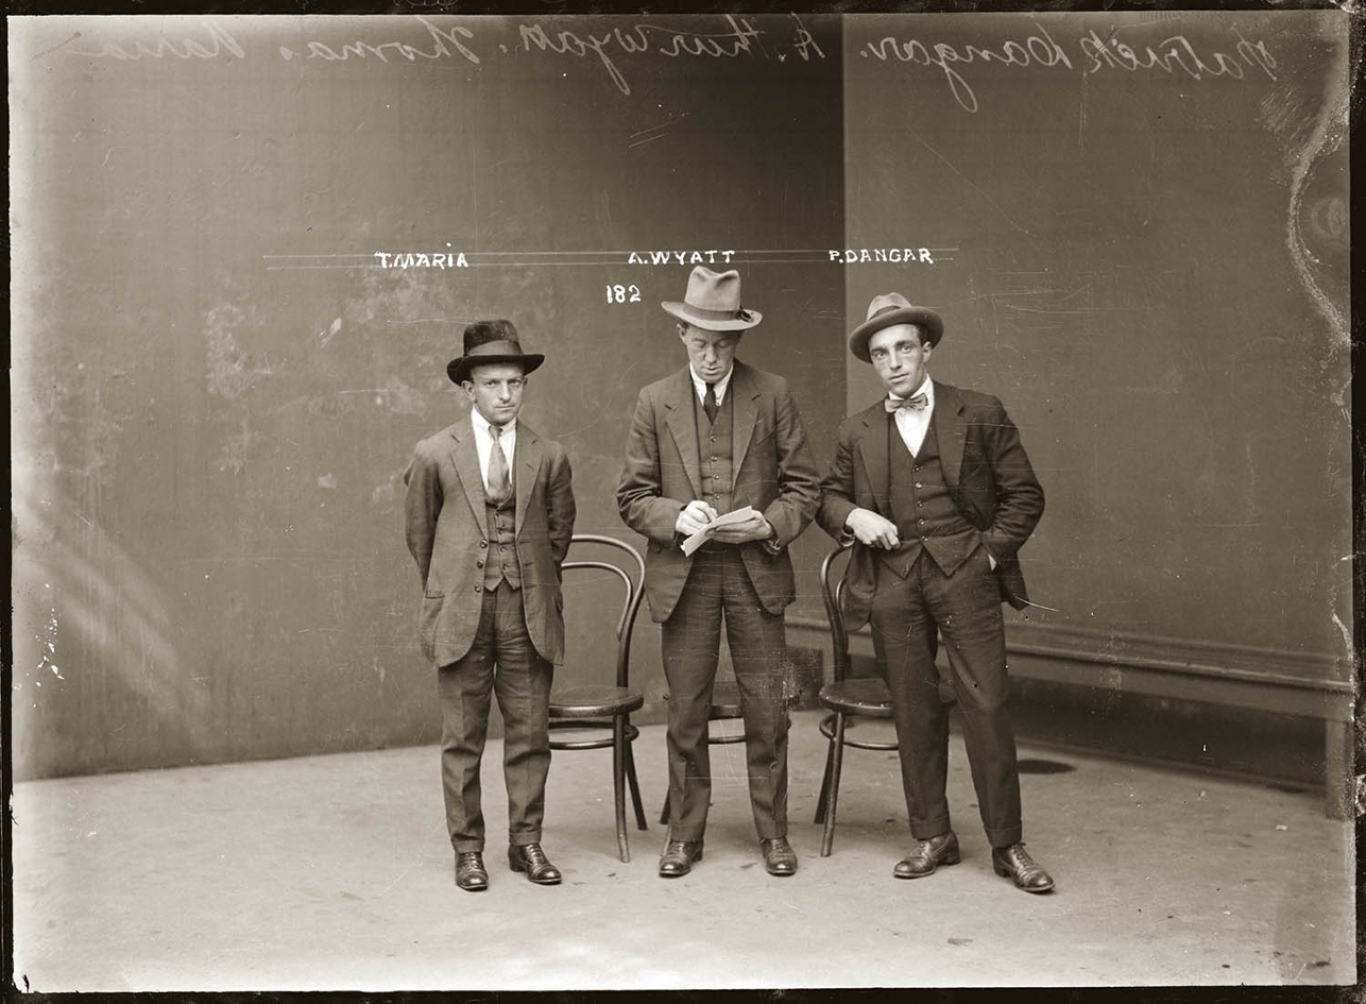 Mug shot of Thomas Maria, Arthur Wyatt, and Patrick Dangar (alias Brosnan), Central Police Station, ca. 1920.